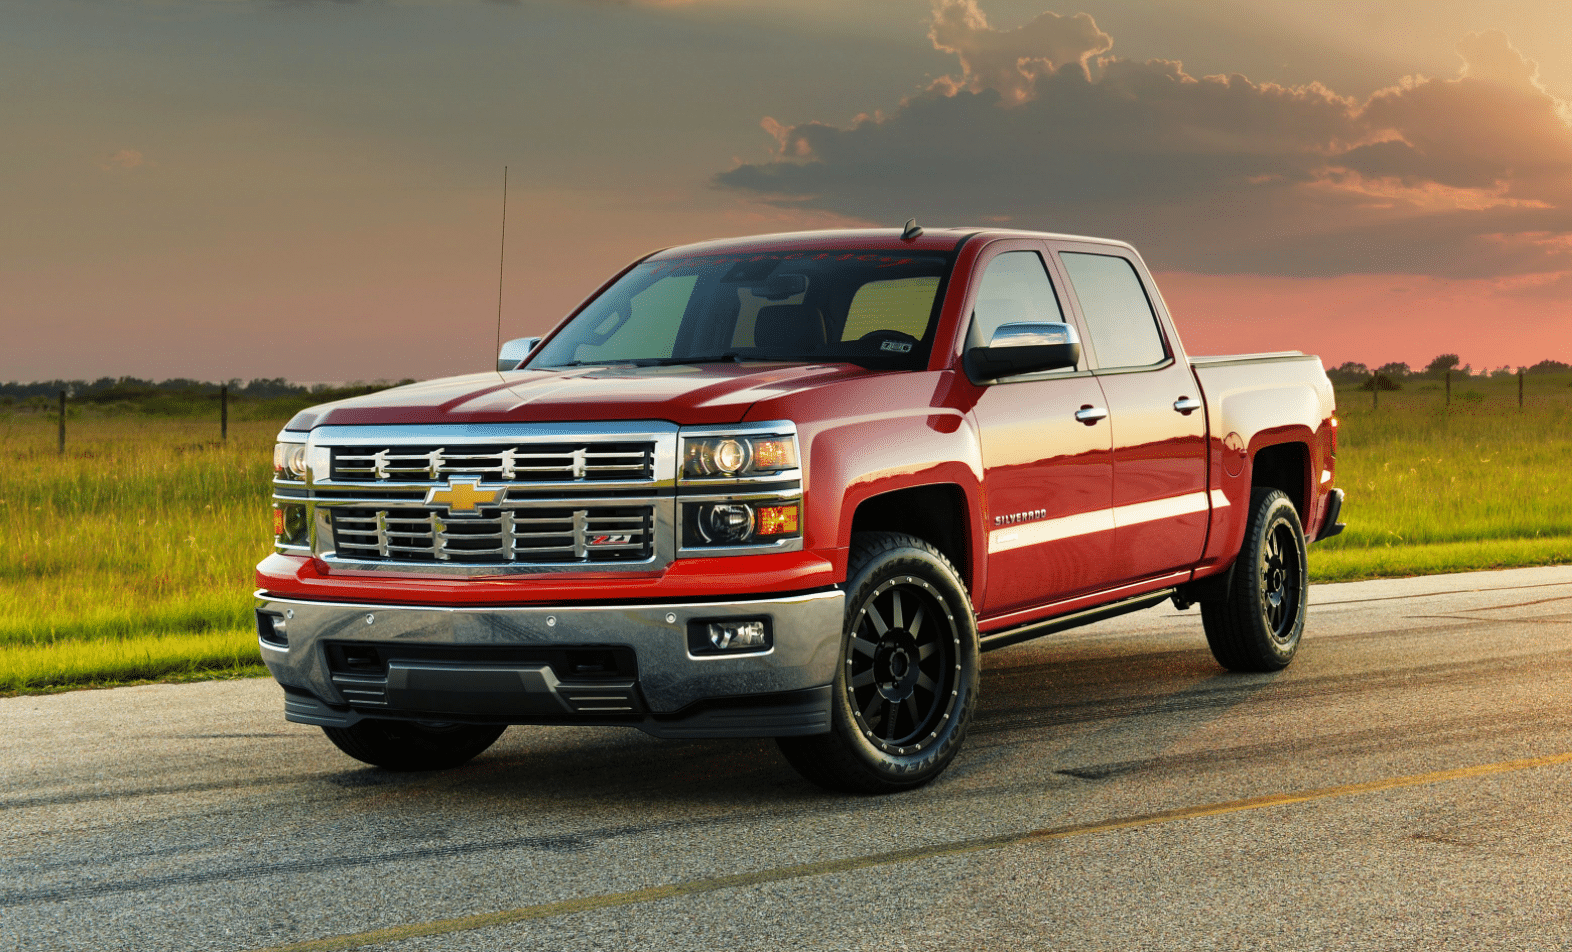 6 Best Exhaust Systems for Silverado 1500 - Review